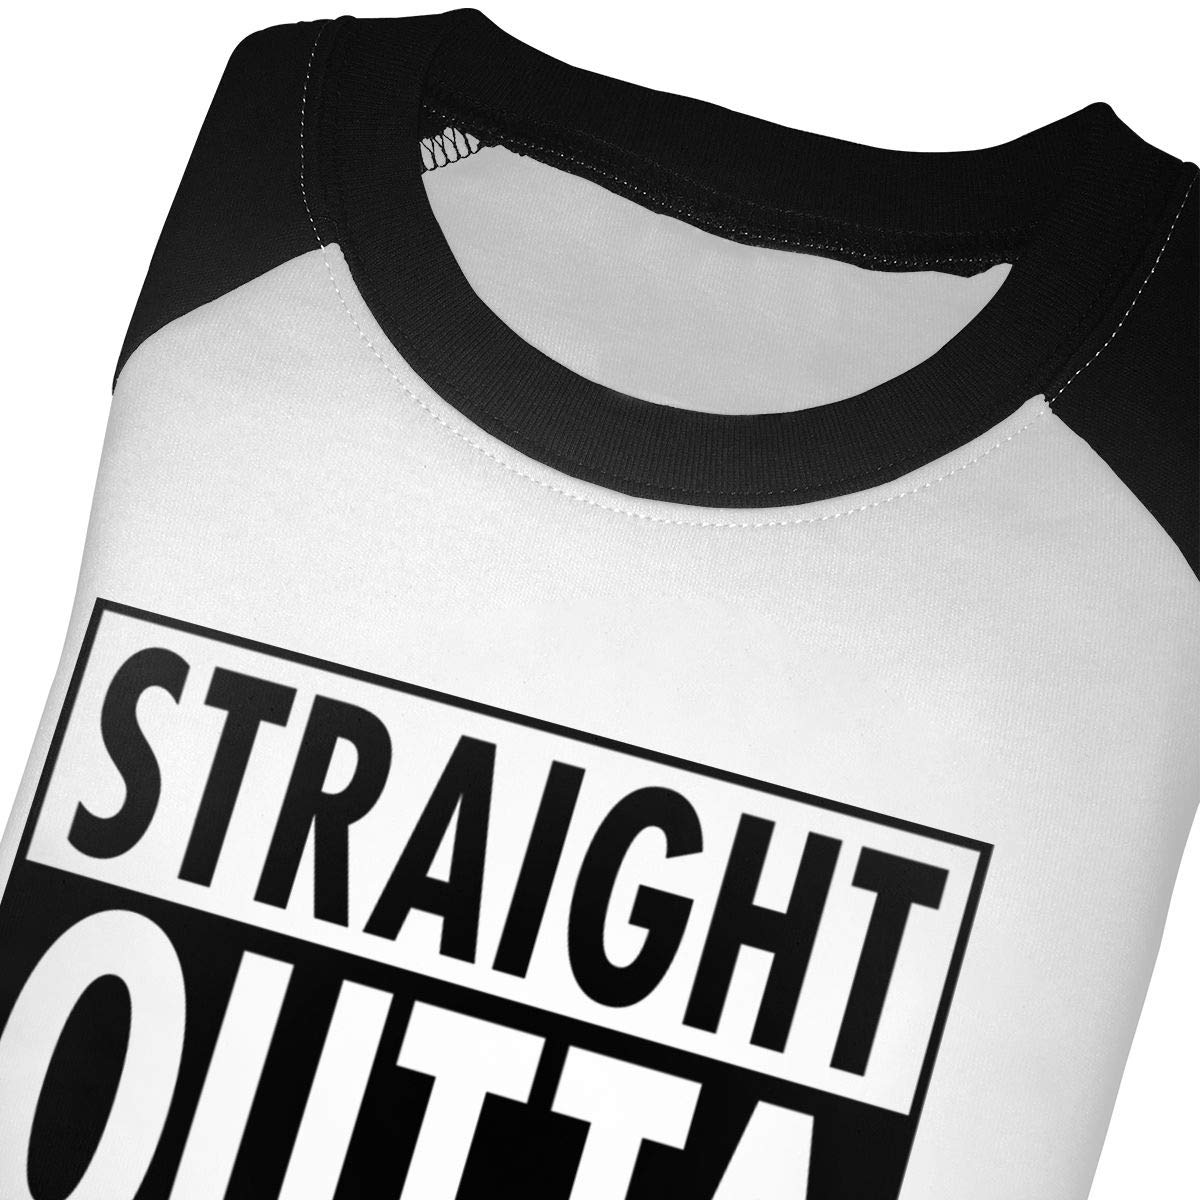 Kocvbng I Straight Outta Poland Raglan 3//4 Sleeve T Shirts for Girls Boy